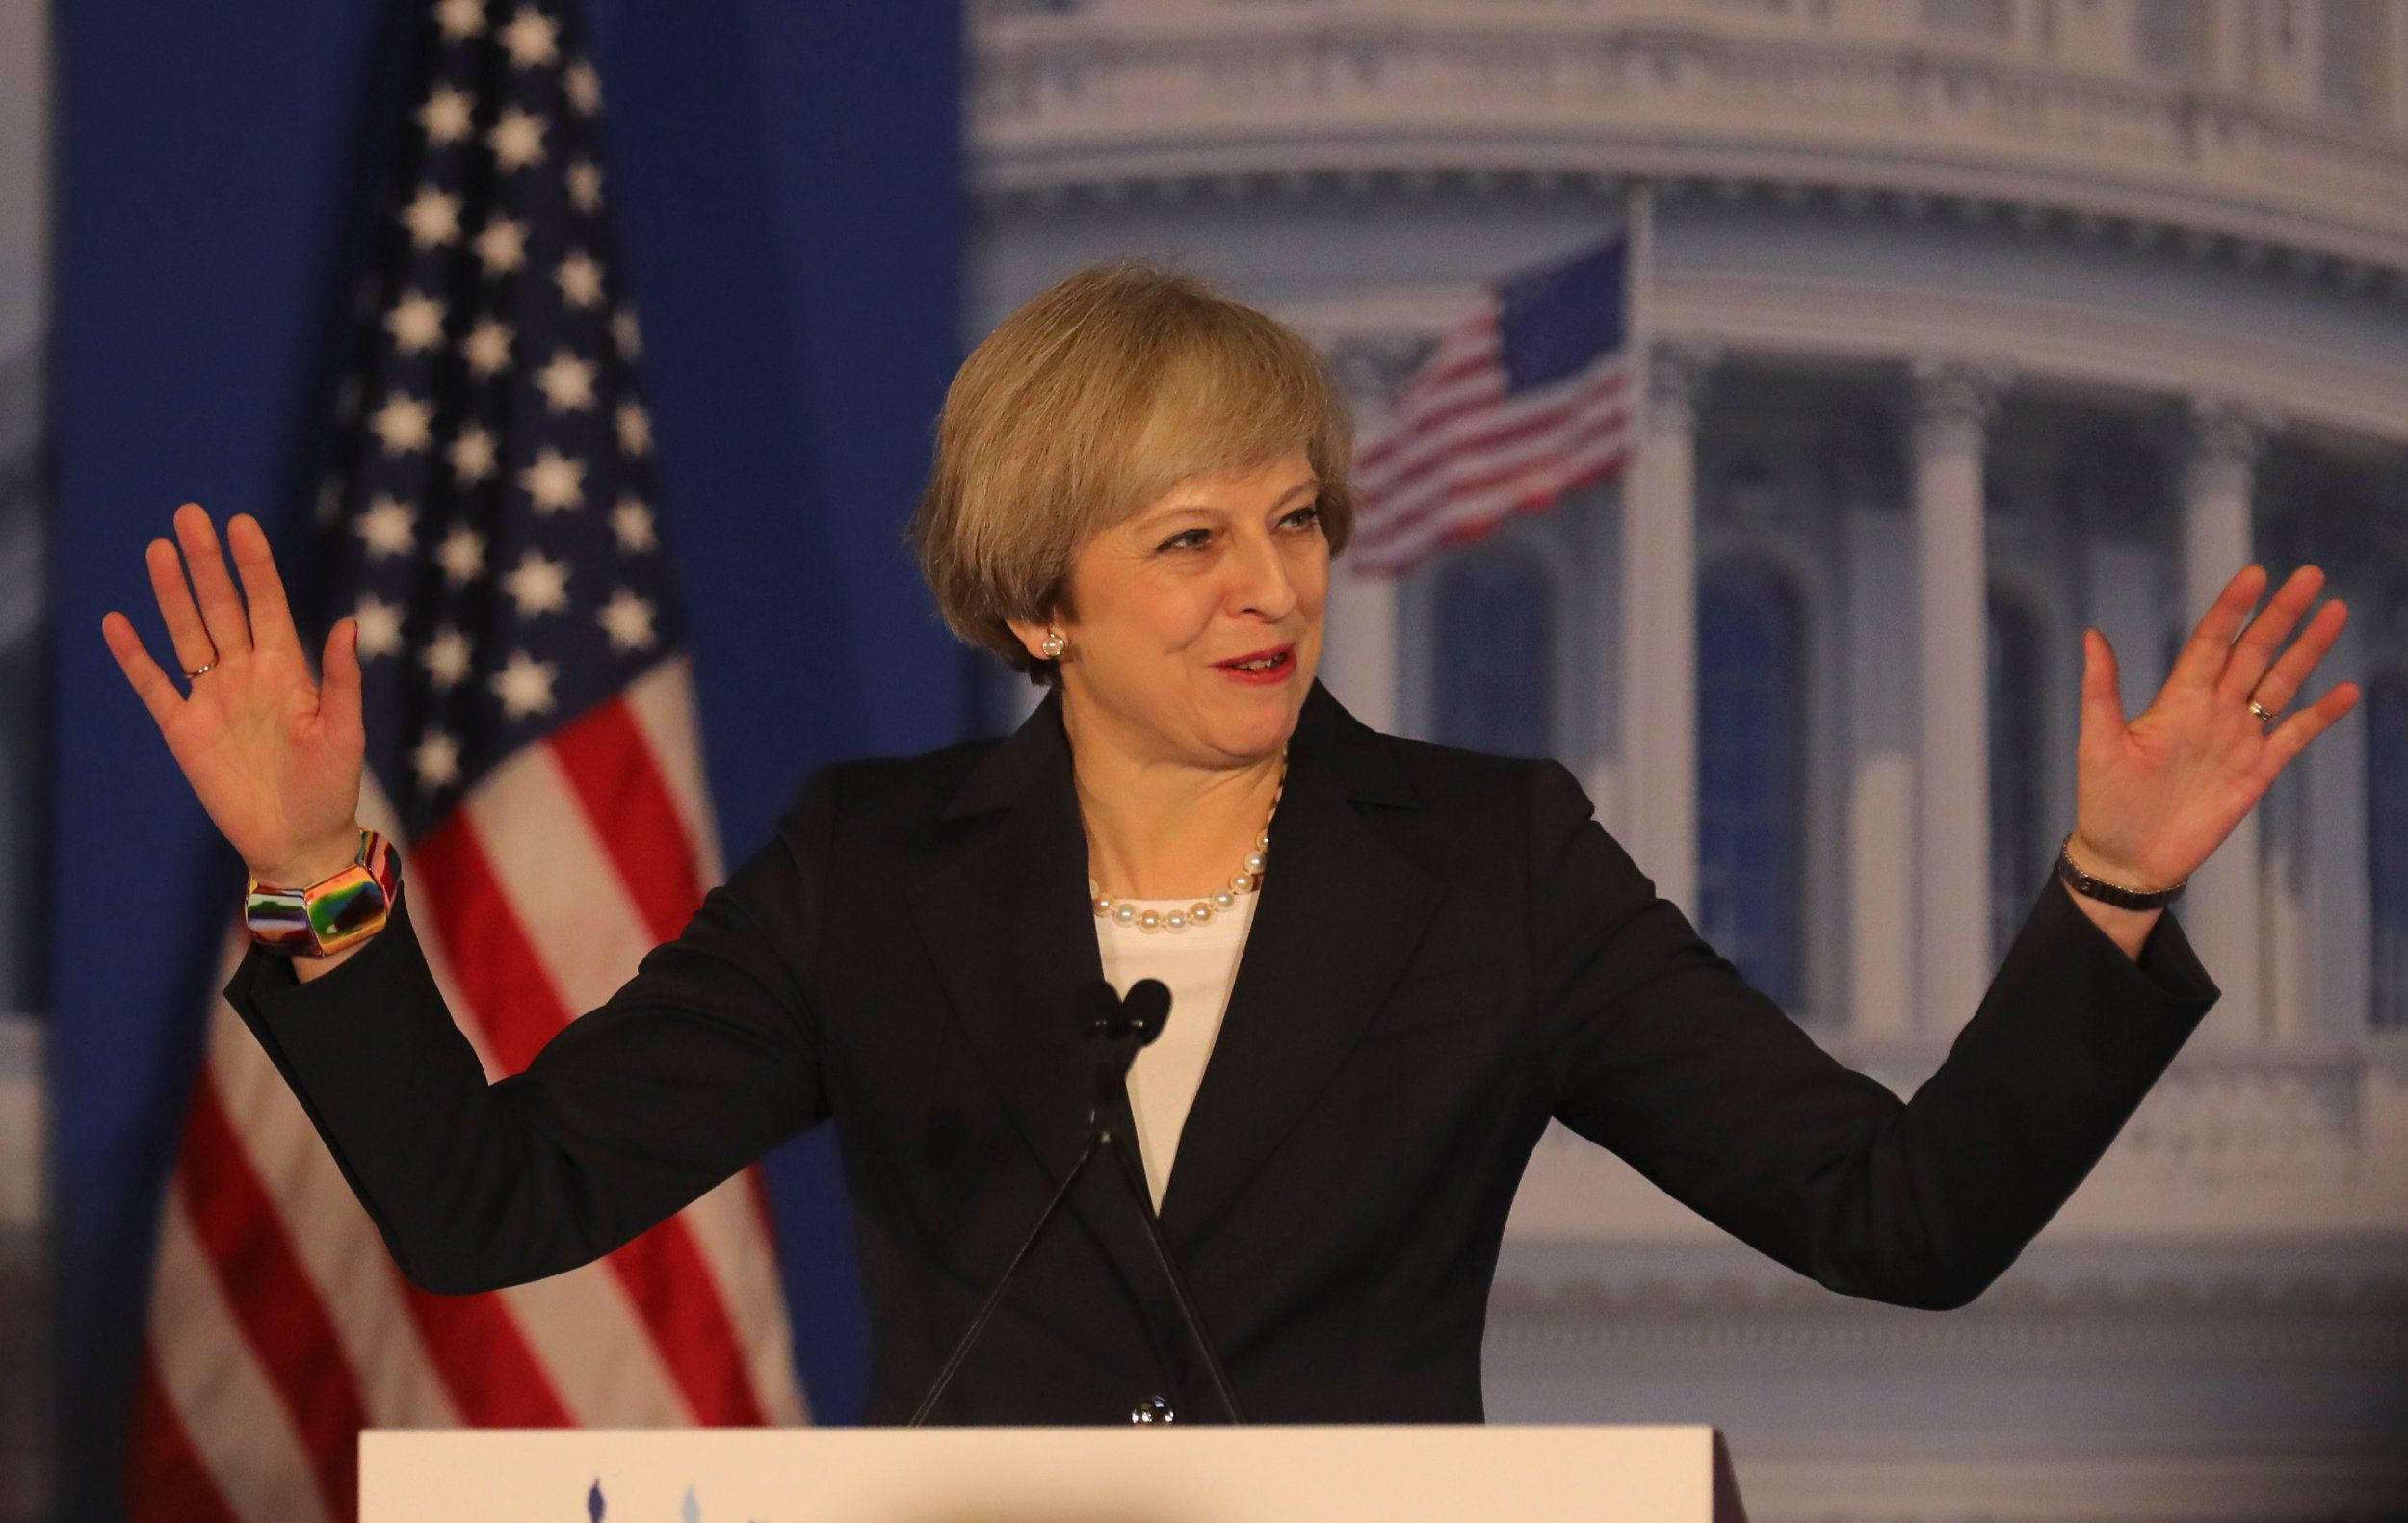 PHILADELPHIA, PA - JANUARY 26: British Prime Minister Theresa May speaks at the Congress of Tomorrow Republican Member Retreat at Loews Philadelphia Hotel on January 26, 2017 in Philadelphia, Pennsylvania. British Prime Minister Theresa May is on a two-day visit to the United States and will be the first world leader to meet with President Donald Trump. (Photo by Christopher Furlong/Getty Images) ***BESTPIX***